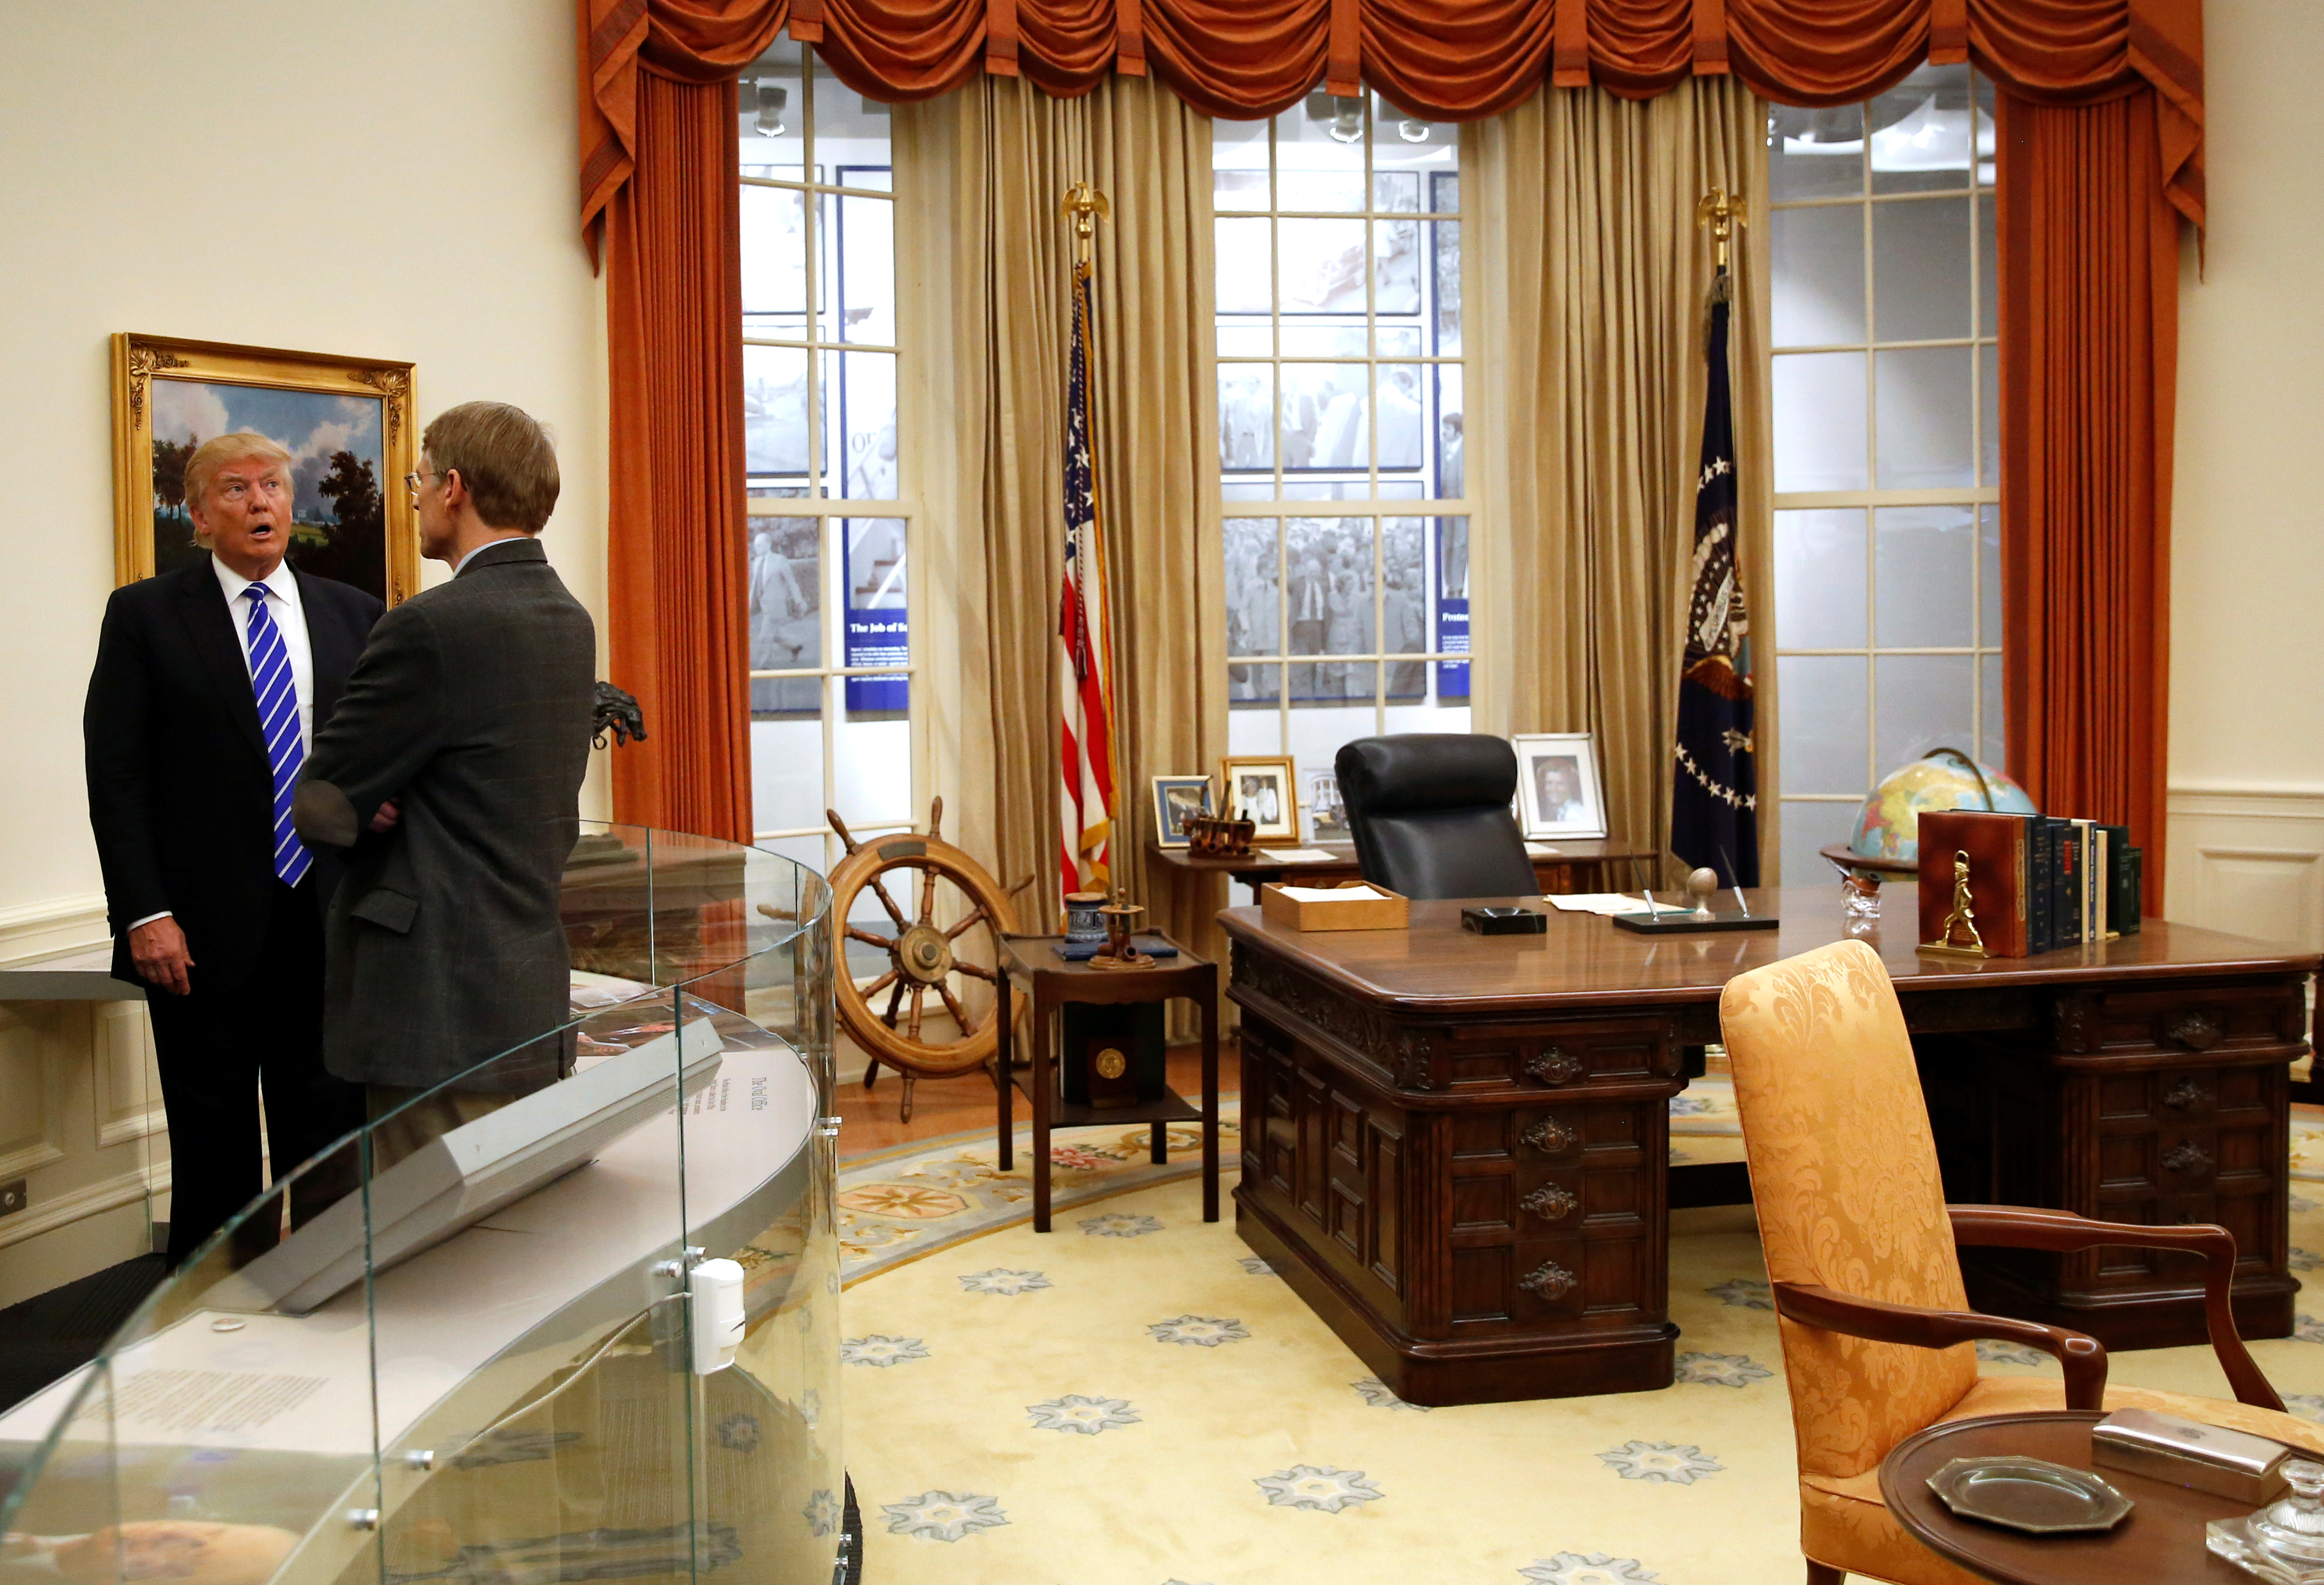 Donald Trump views a replica of the Oval Office on a tour of the Gerald Ford Presidential Museum in Grand Rapids, Michigan, on Sept. 30, 2016.